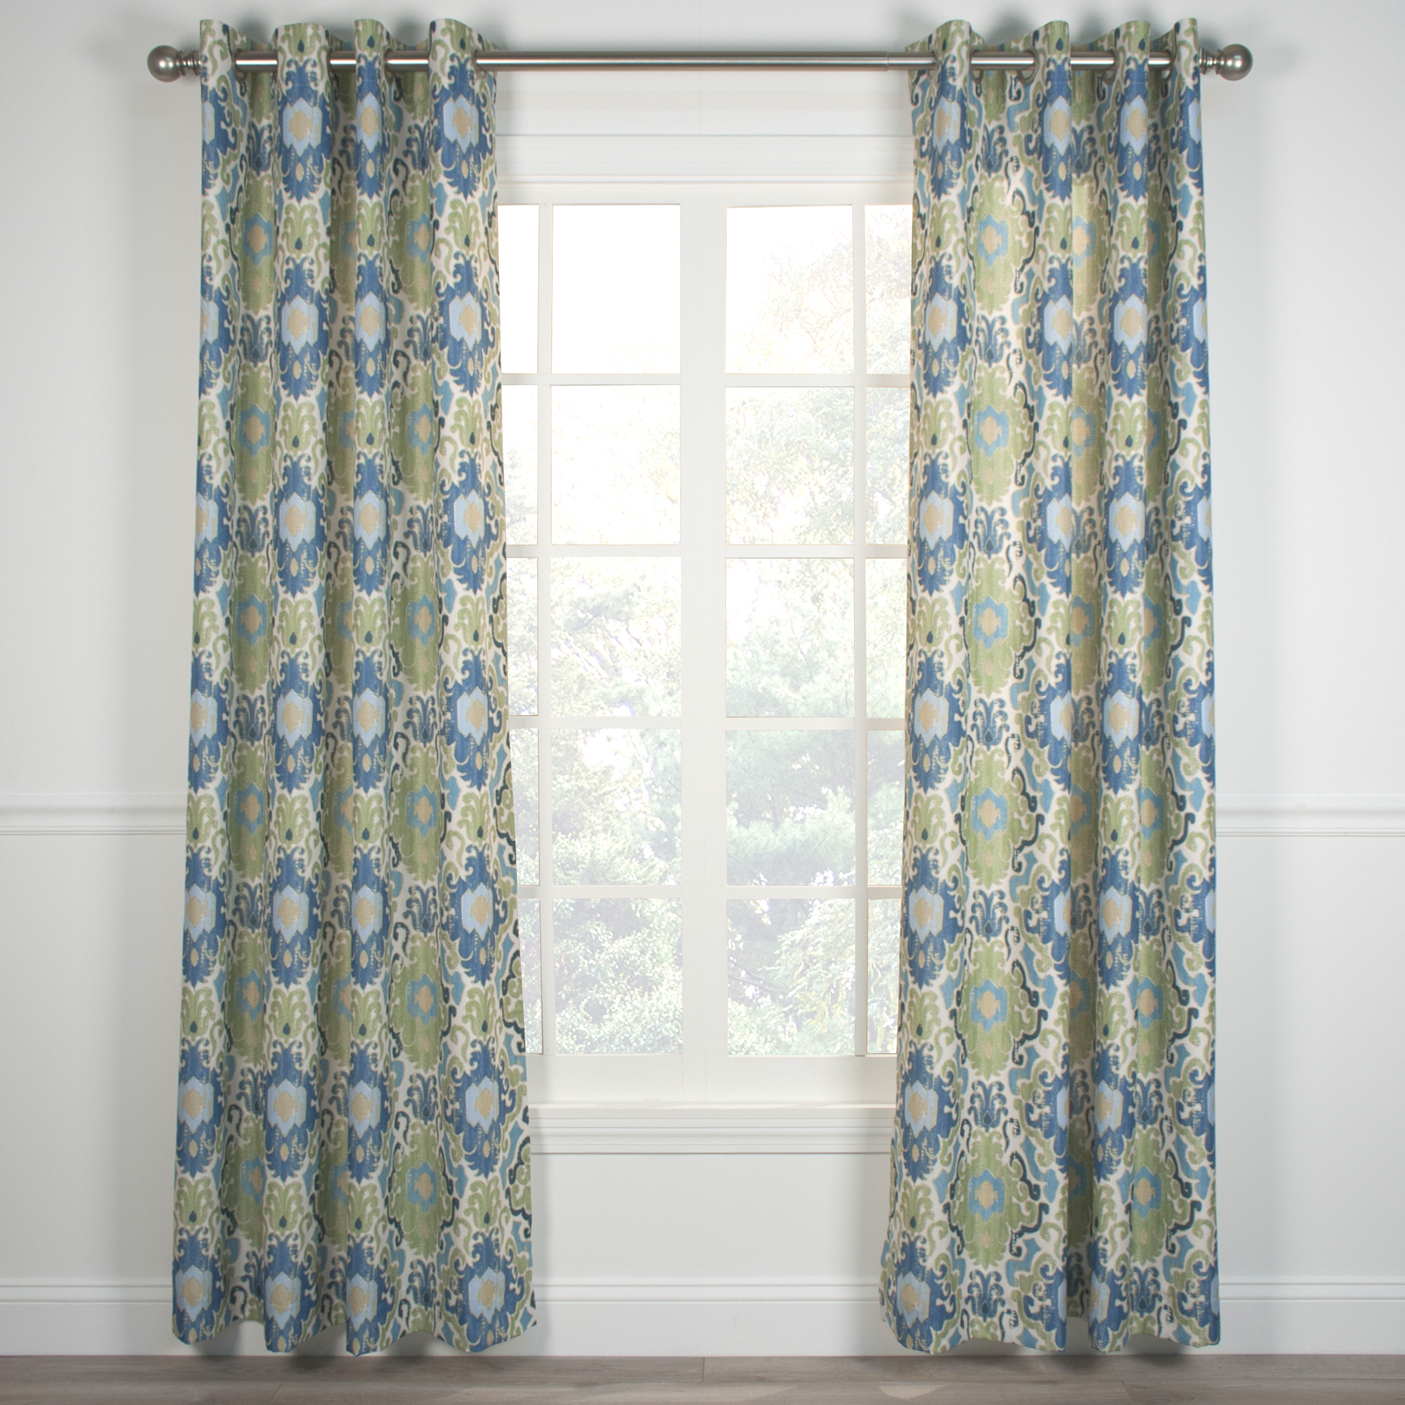 Lined Grommet Curtain Panels Pertaining To Newest Tuscany Grommet Top Curtain Panel (View 18 of 20)